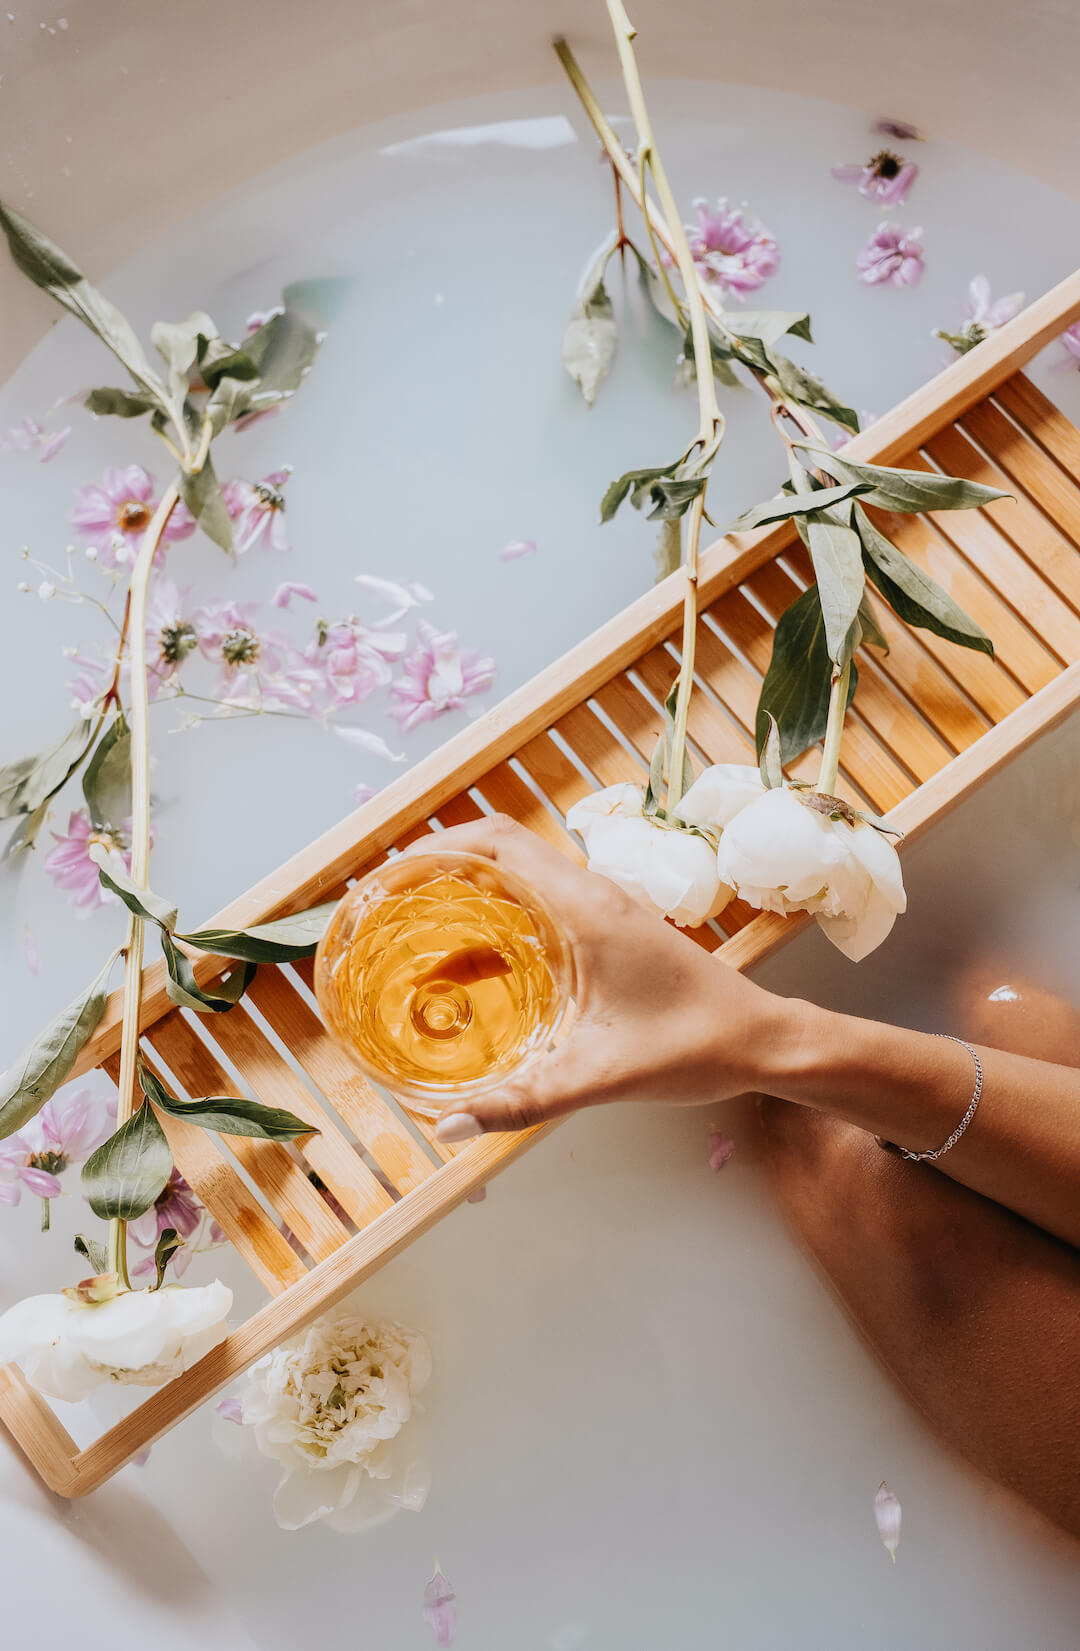 8 Bath Essentials for a Spa Experience At Home